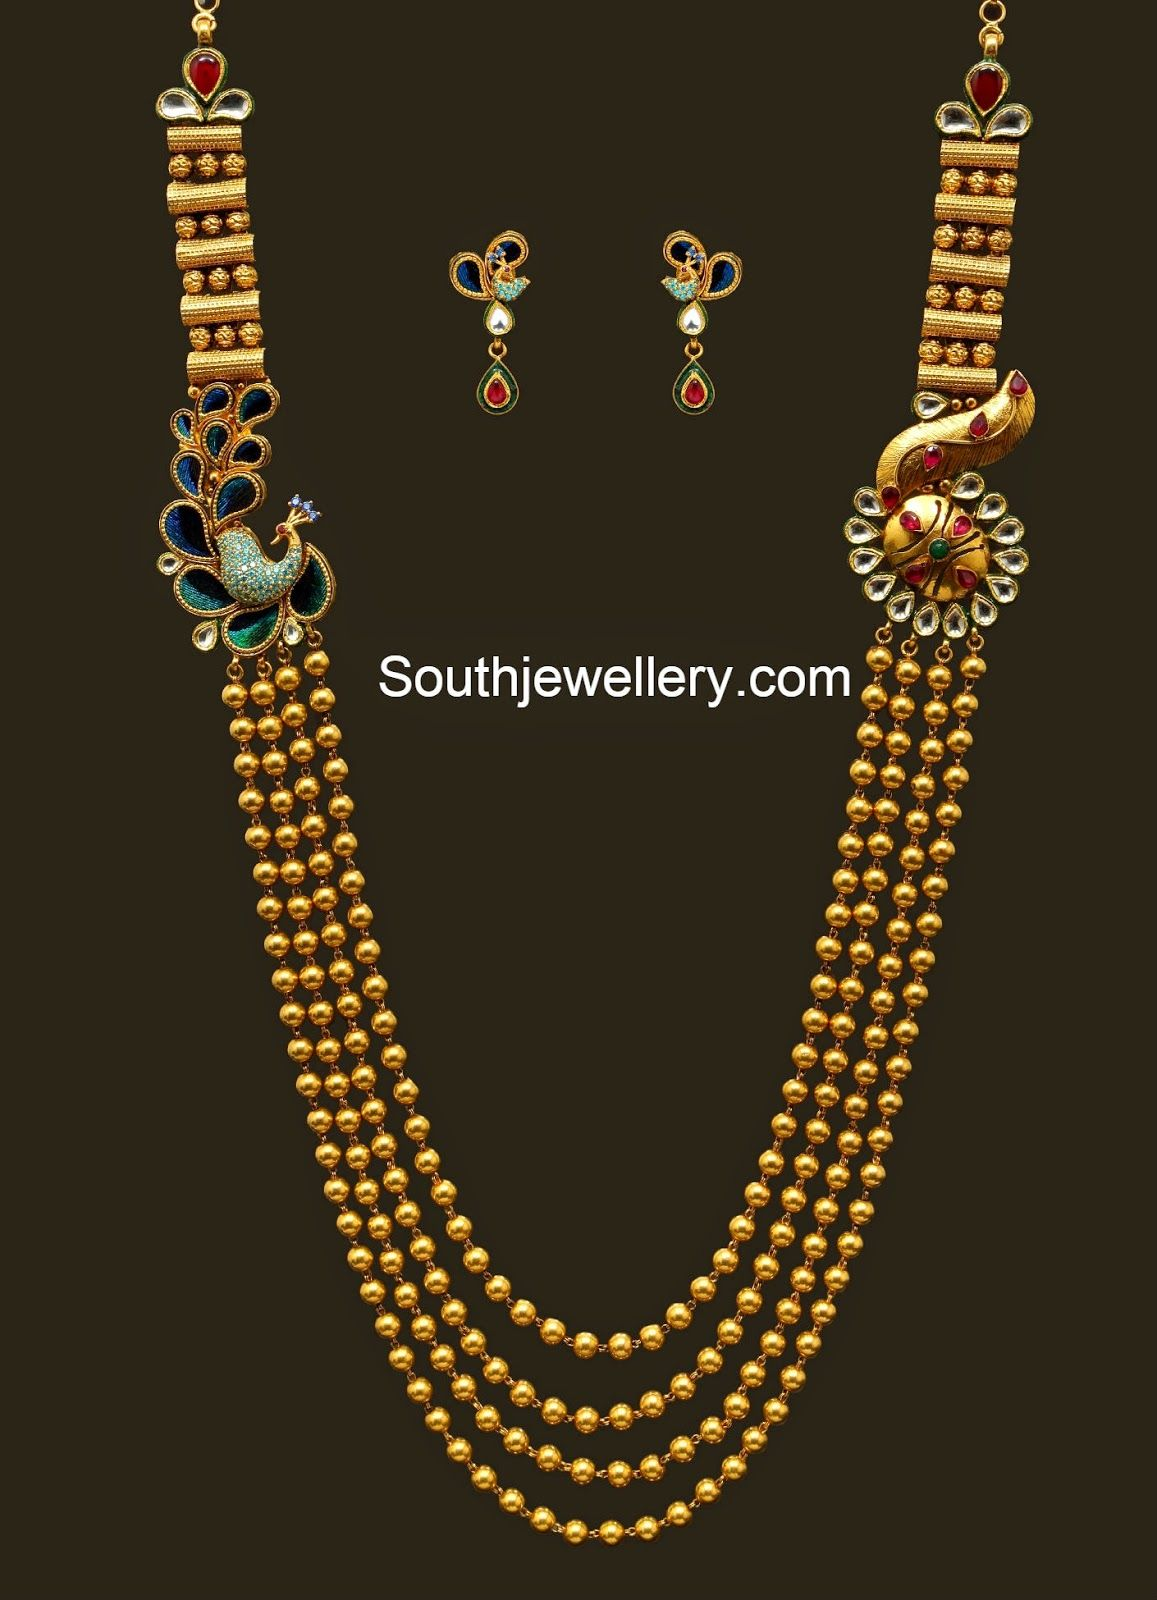 22 carat gold floral designer pendant with multiple beads chain and - Antique Gundla Haram With Peacock Mugappu Jewellery Designs Find This Pin And More On Long Gold Chains